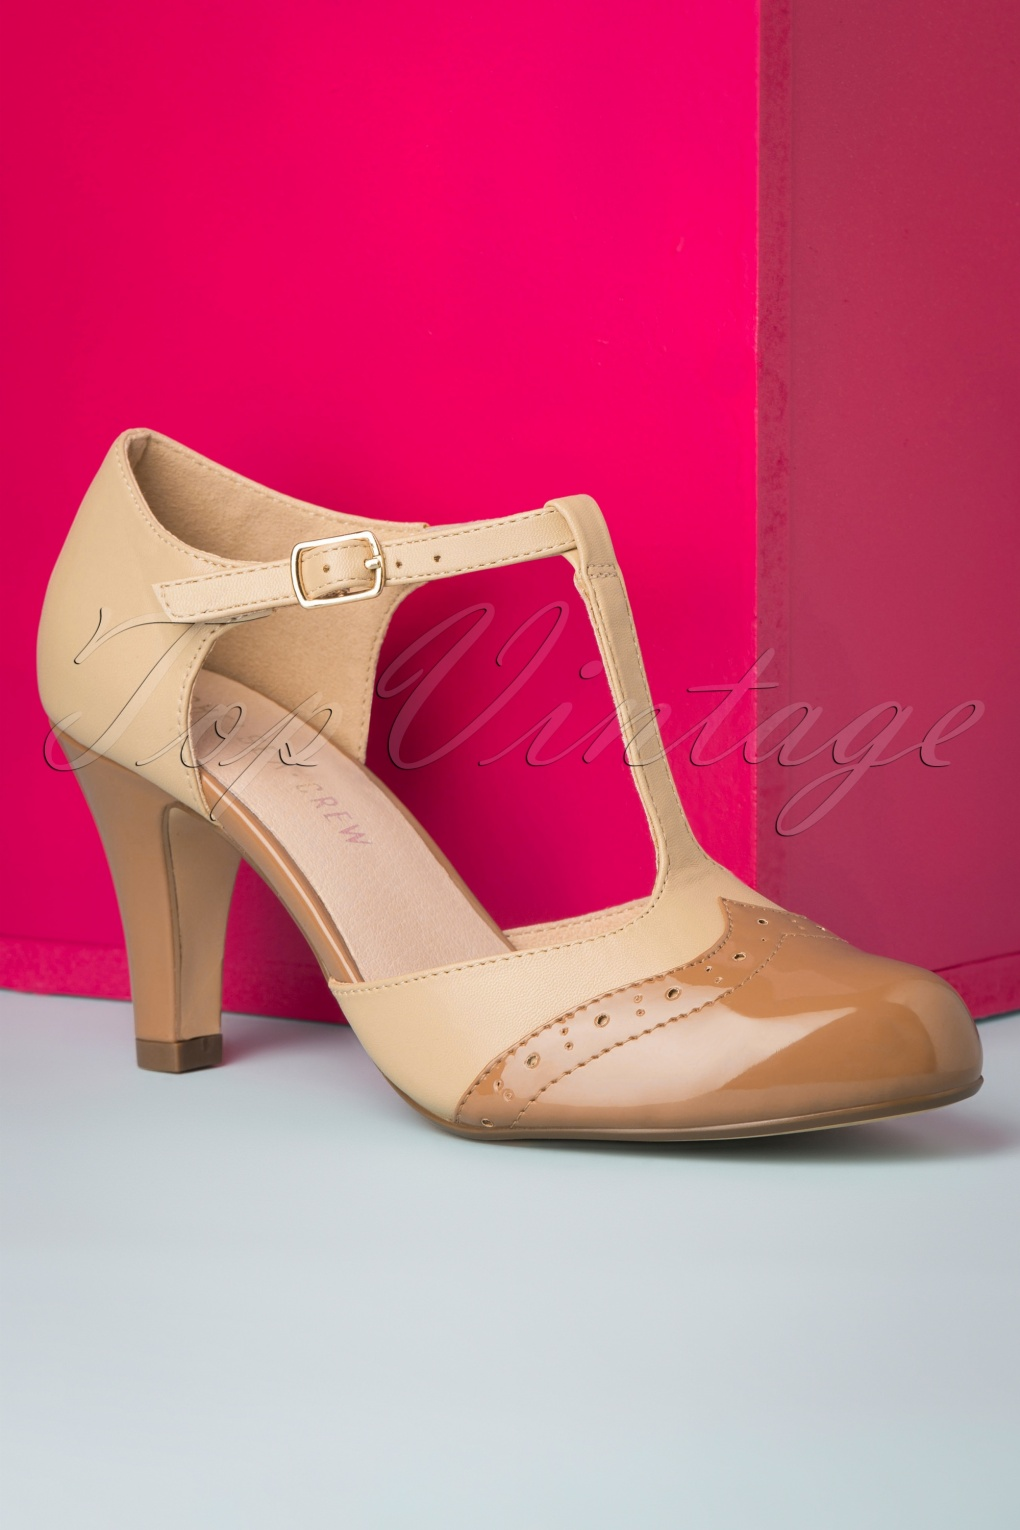 1920s Shoes for UK – T-Bar, Oxfords, Flats 20s Gatsby T-Strap Pumps in Tan and Nude £73.35 AT vintagedancer.com